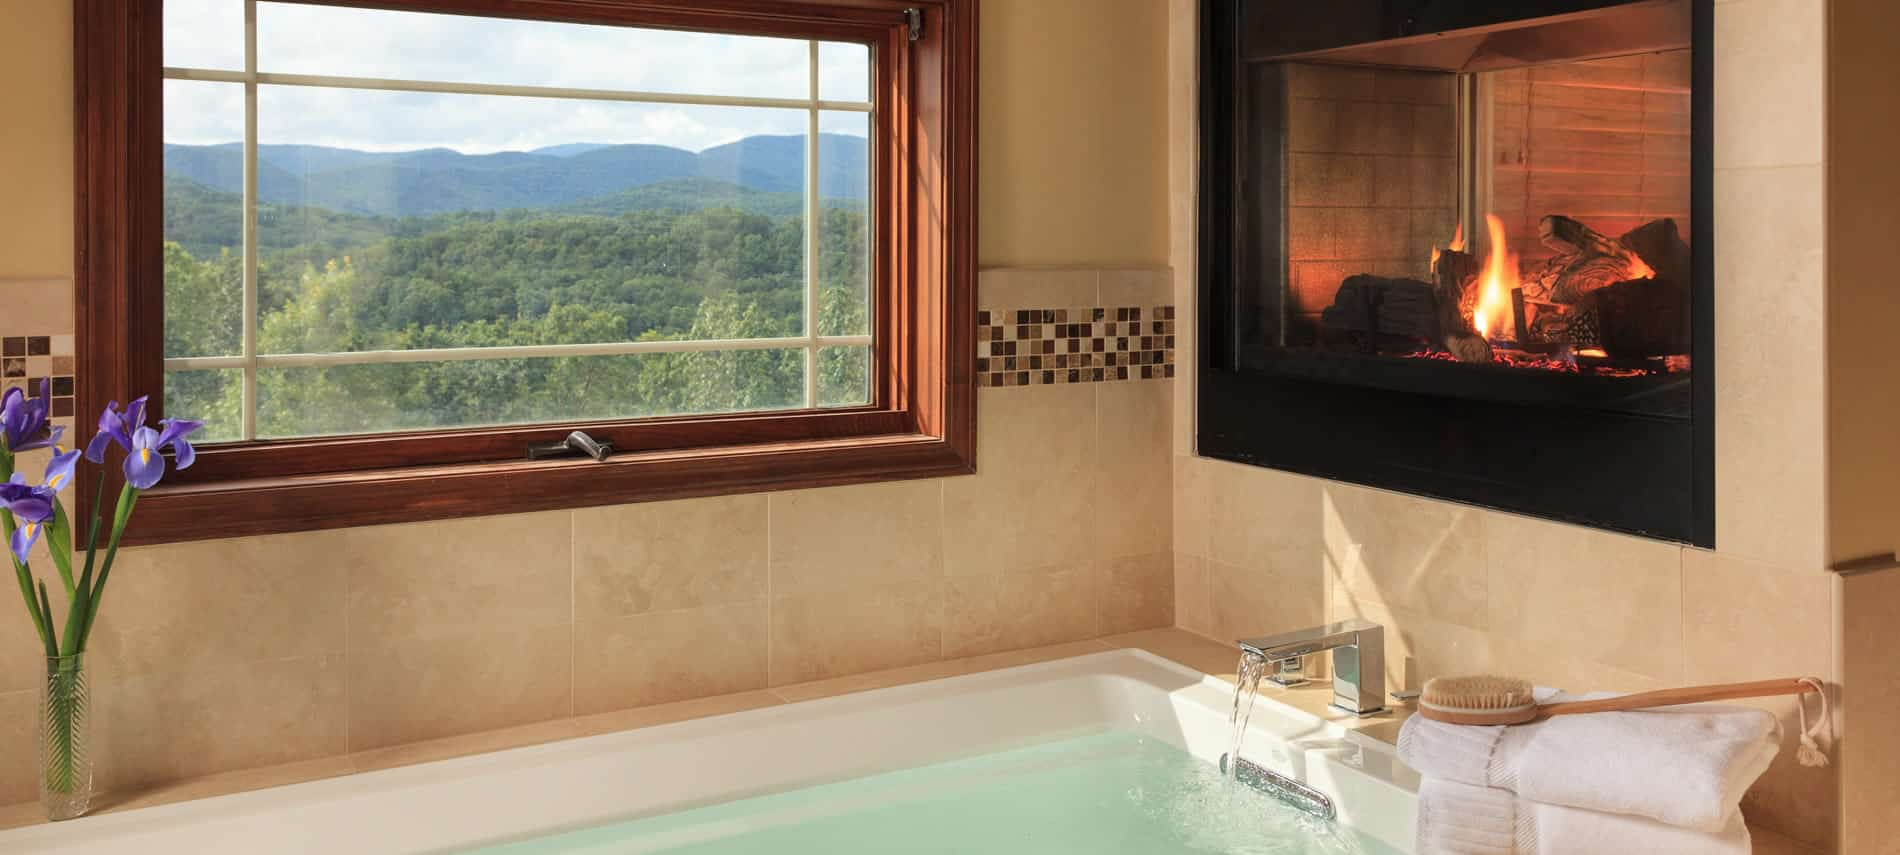 soaking tub full with water, built in gas fireplace with a window with a view of the mountains